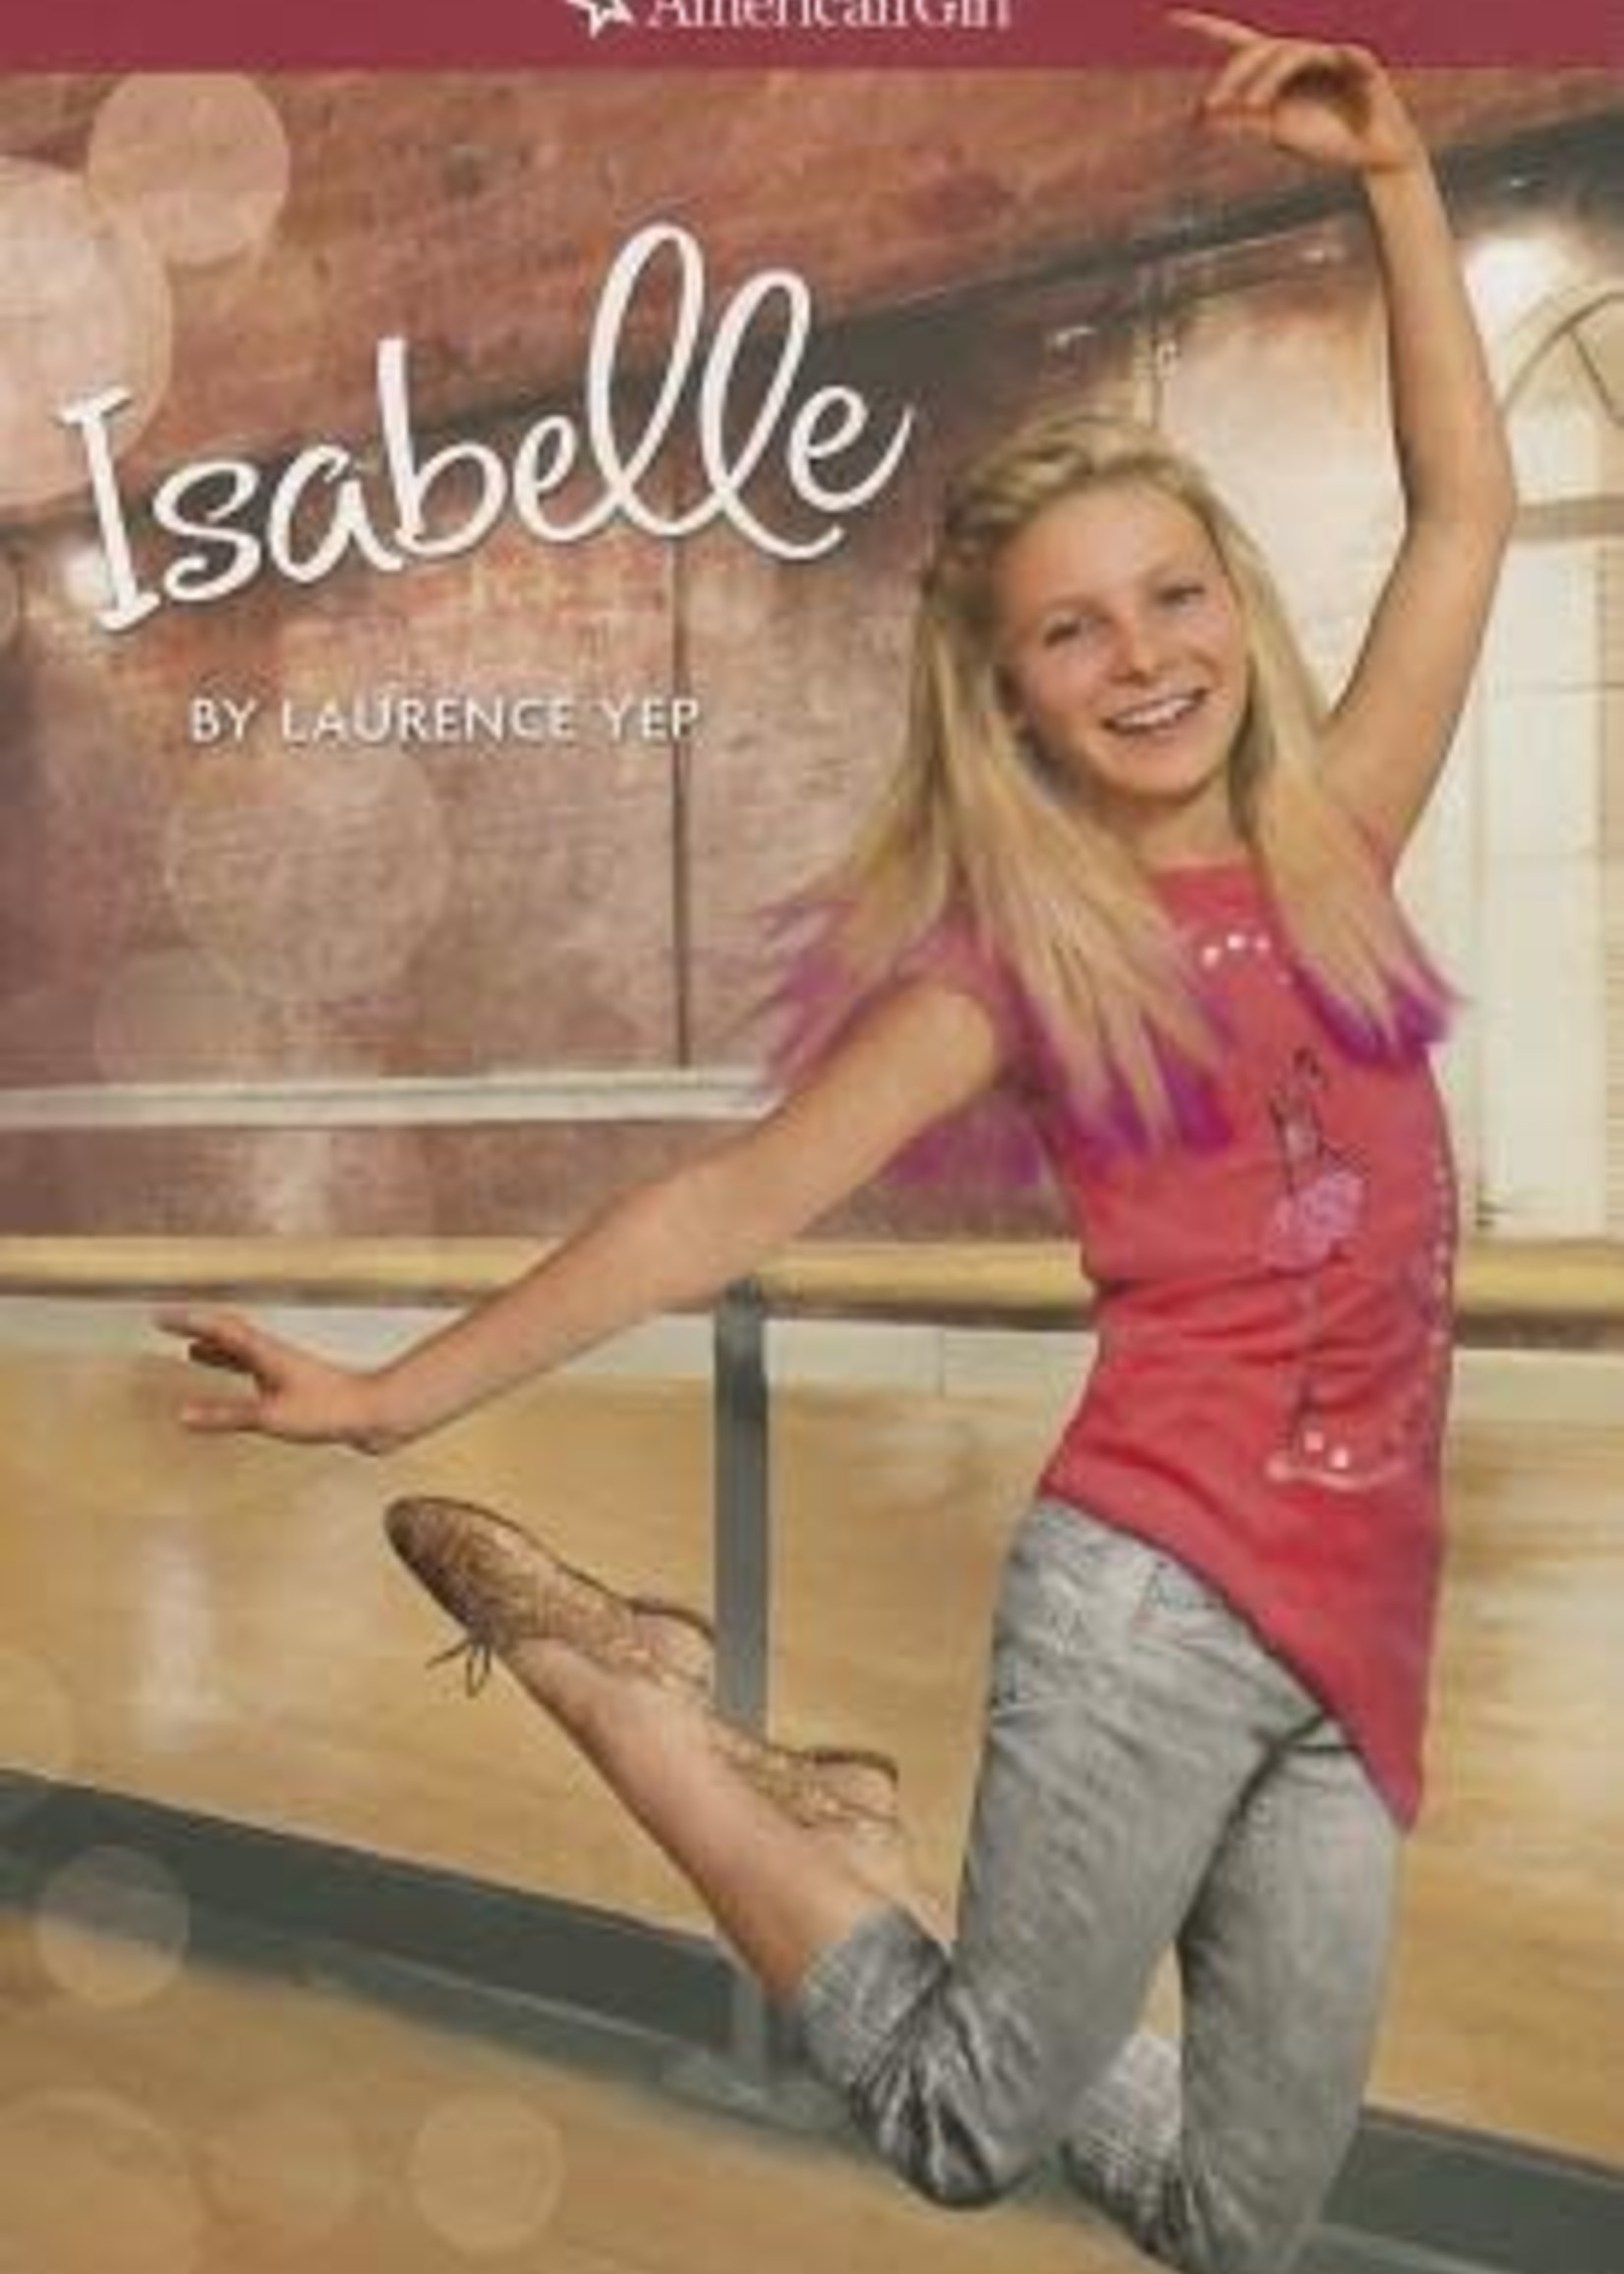 USED - Isabelle by Laurence Yep